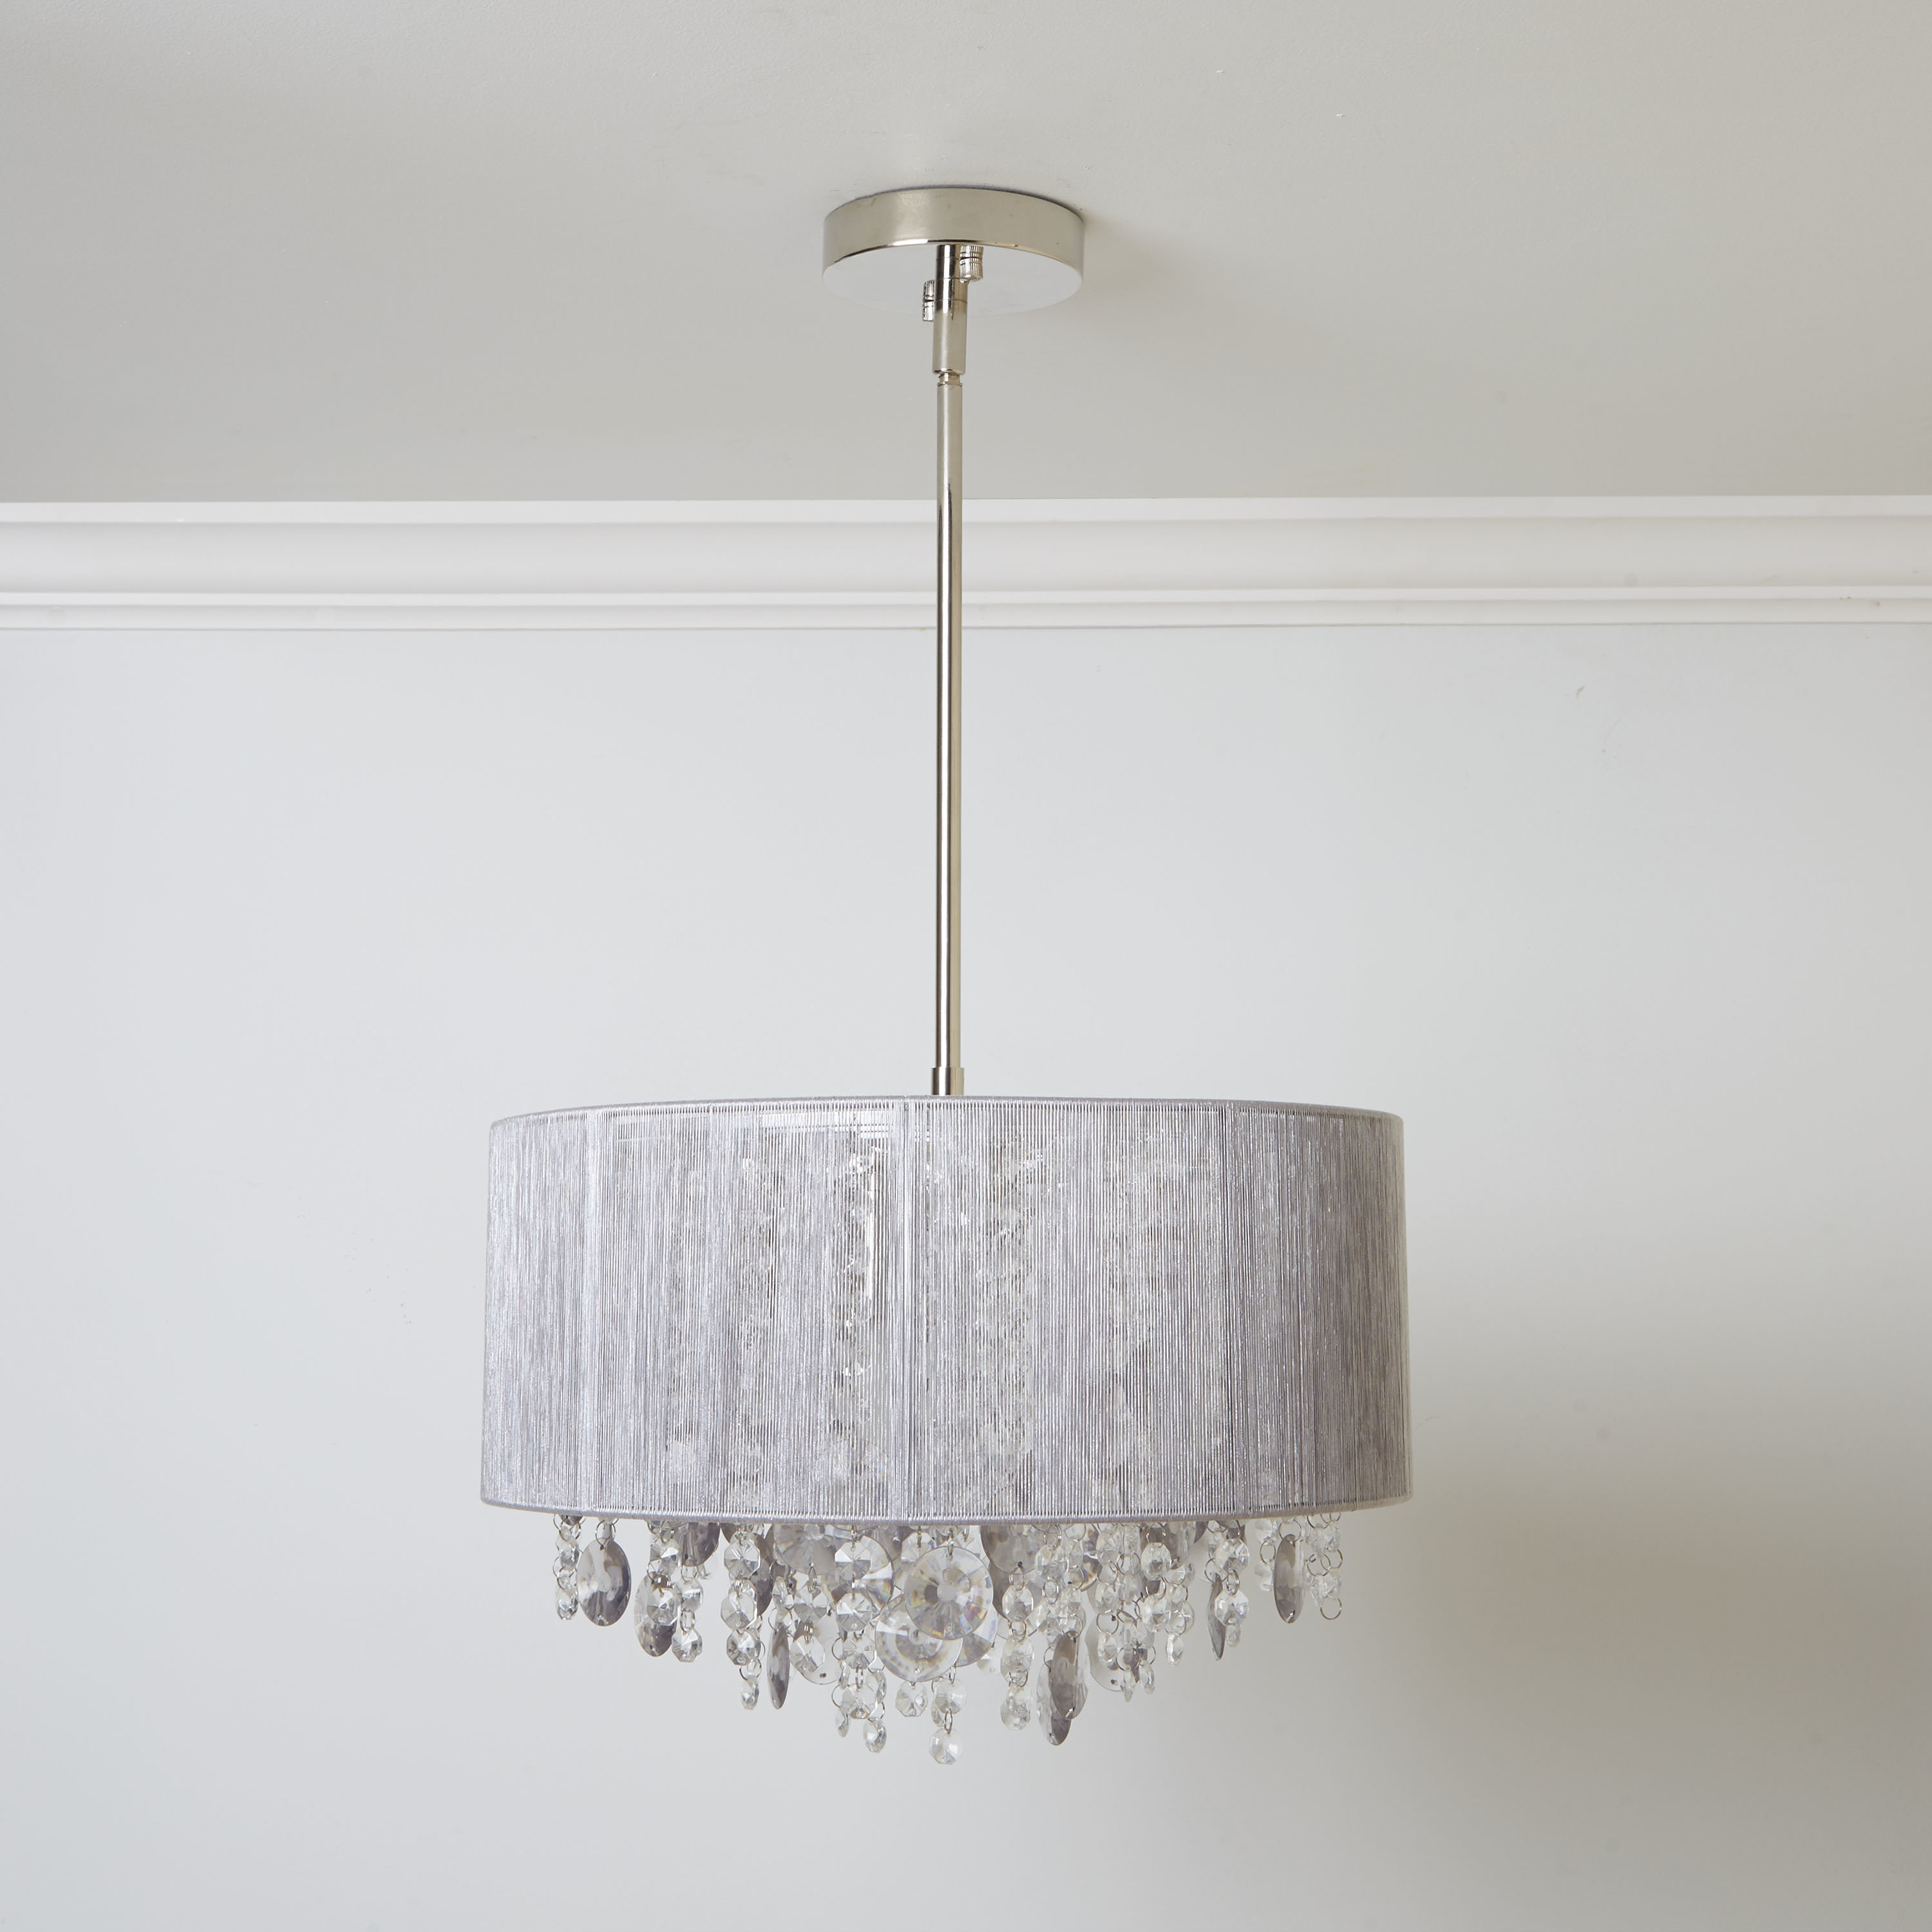 Wayfair Within Famous Willems 1 Light Single Drum Pendants (View 4 of 20)